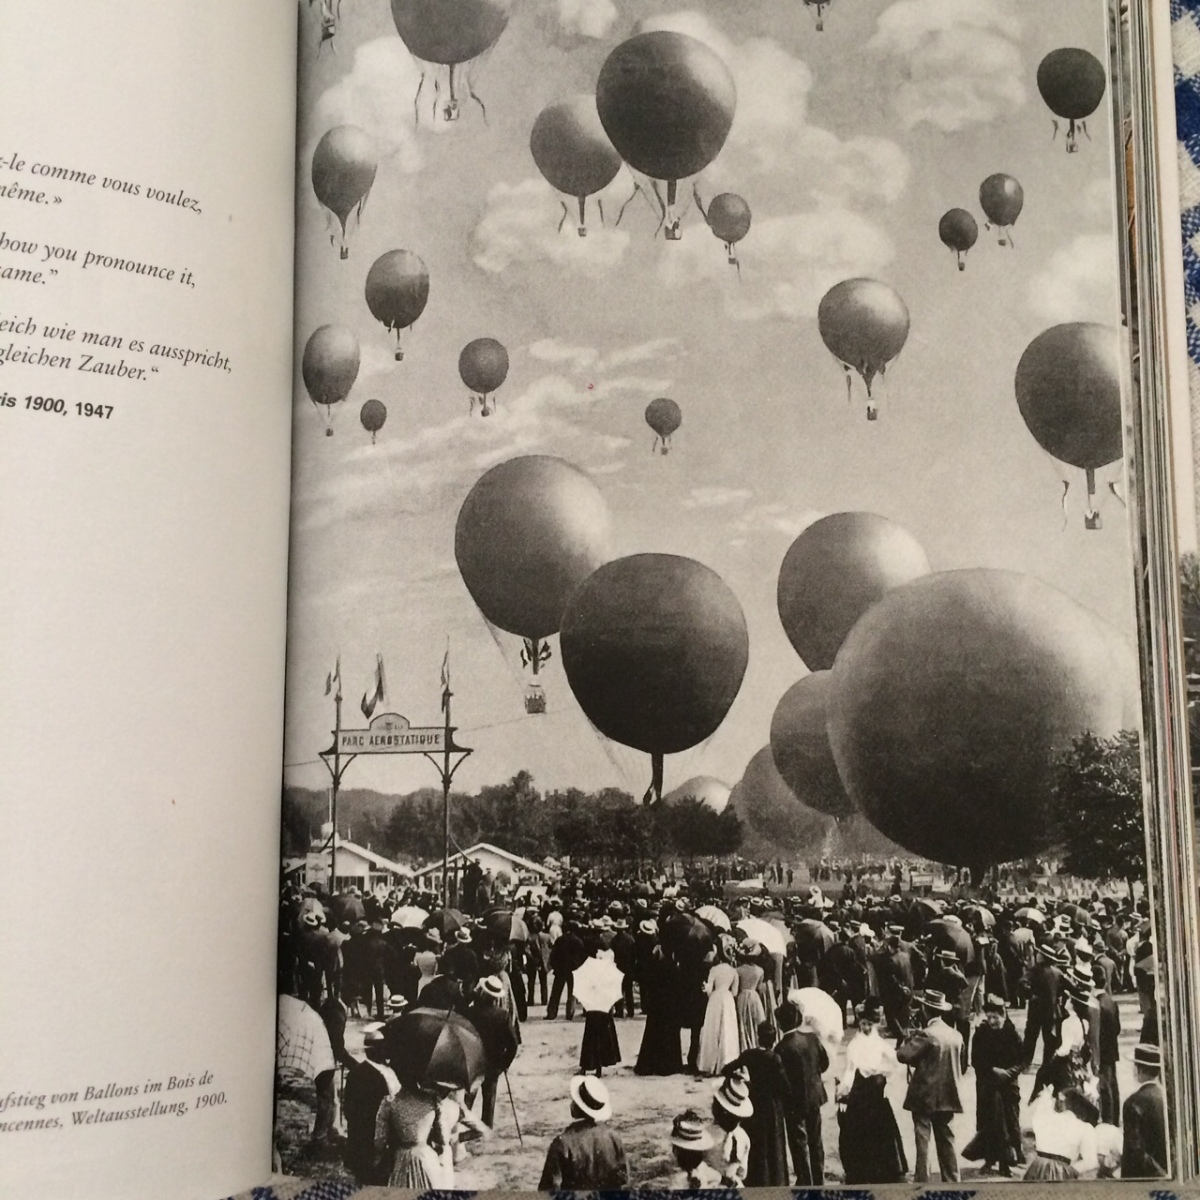 Release of balloons in the Bois de Vincennes during the Exposition universelle, 1900 (anon)